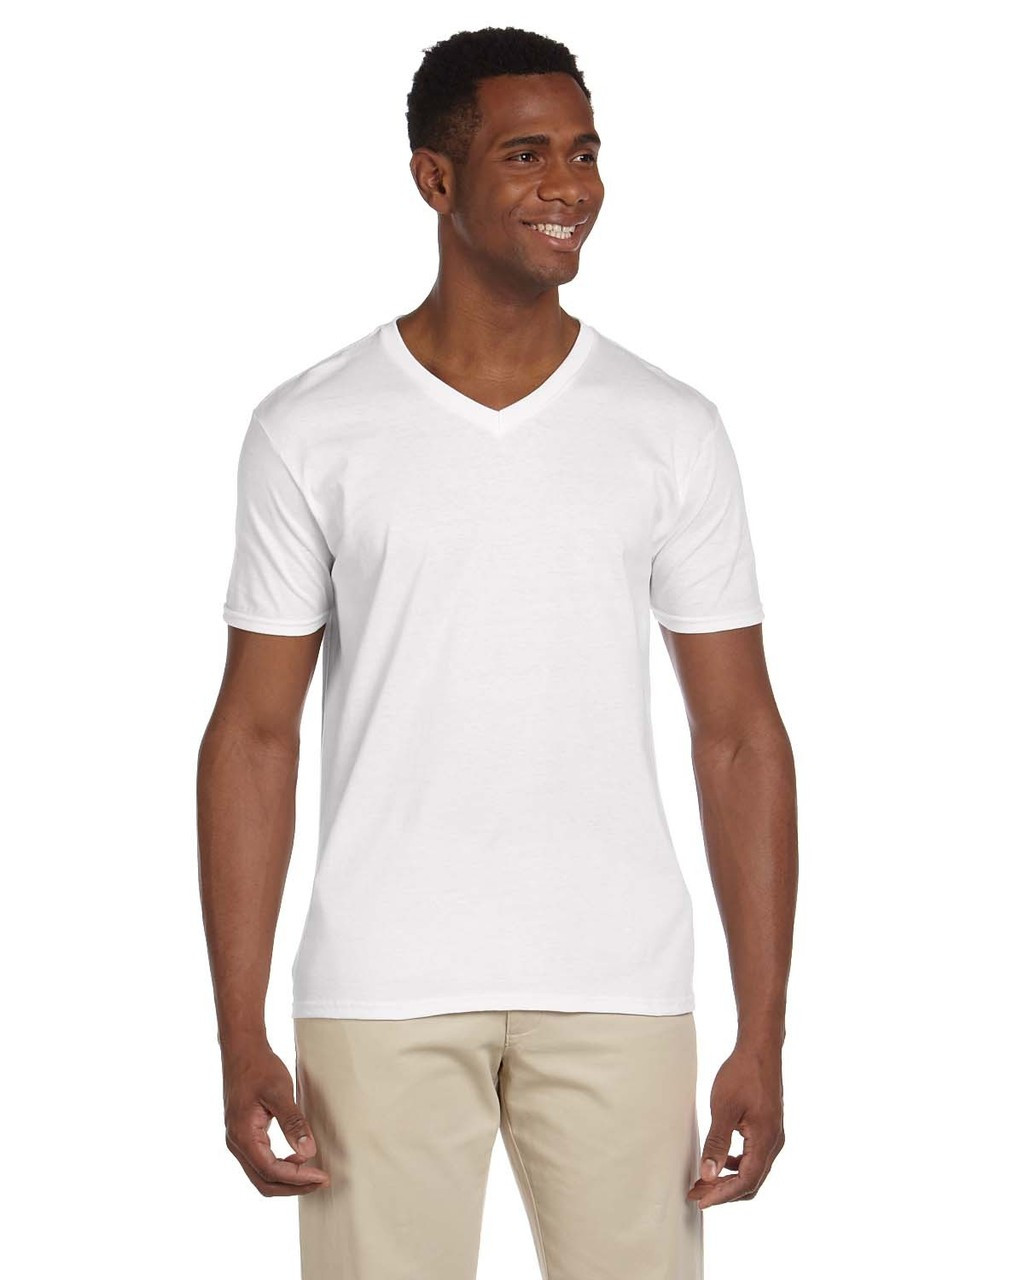 White - G64V Gildan Softstyle V-Neck T-Shirt | Blankclothing.ca